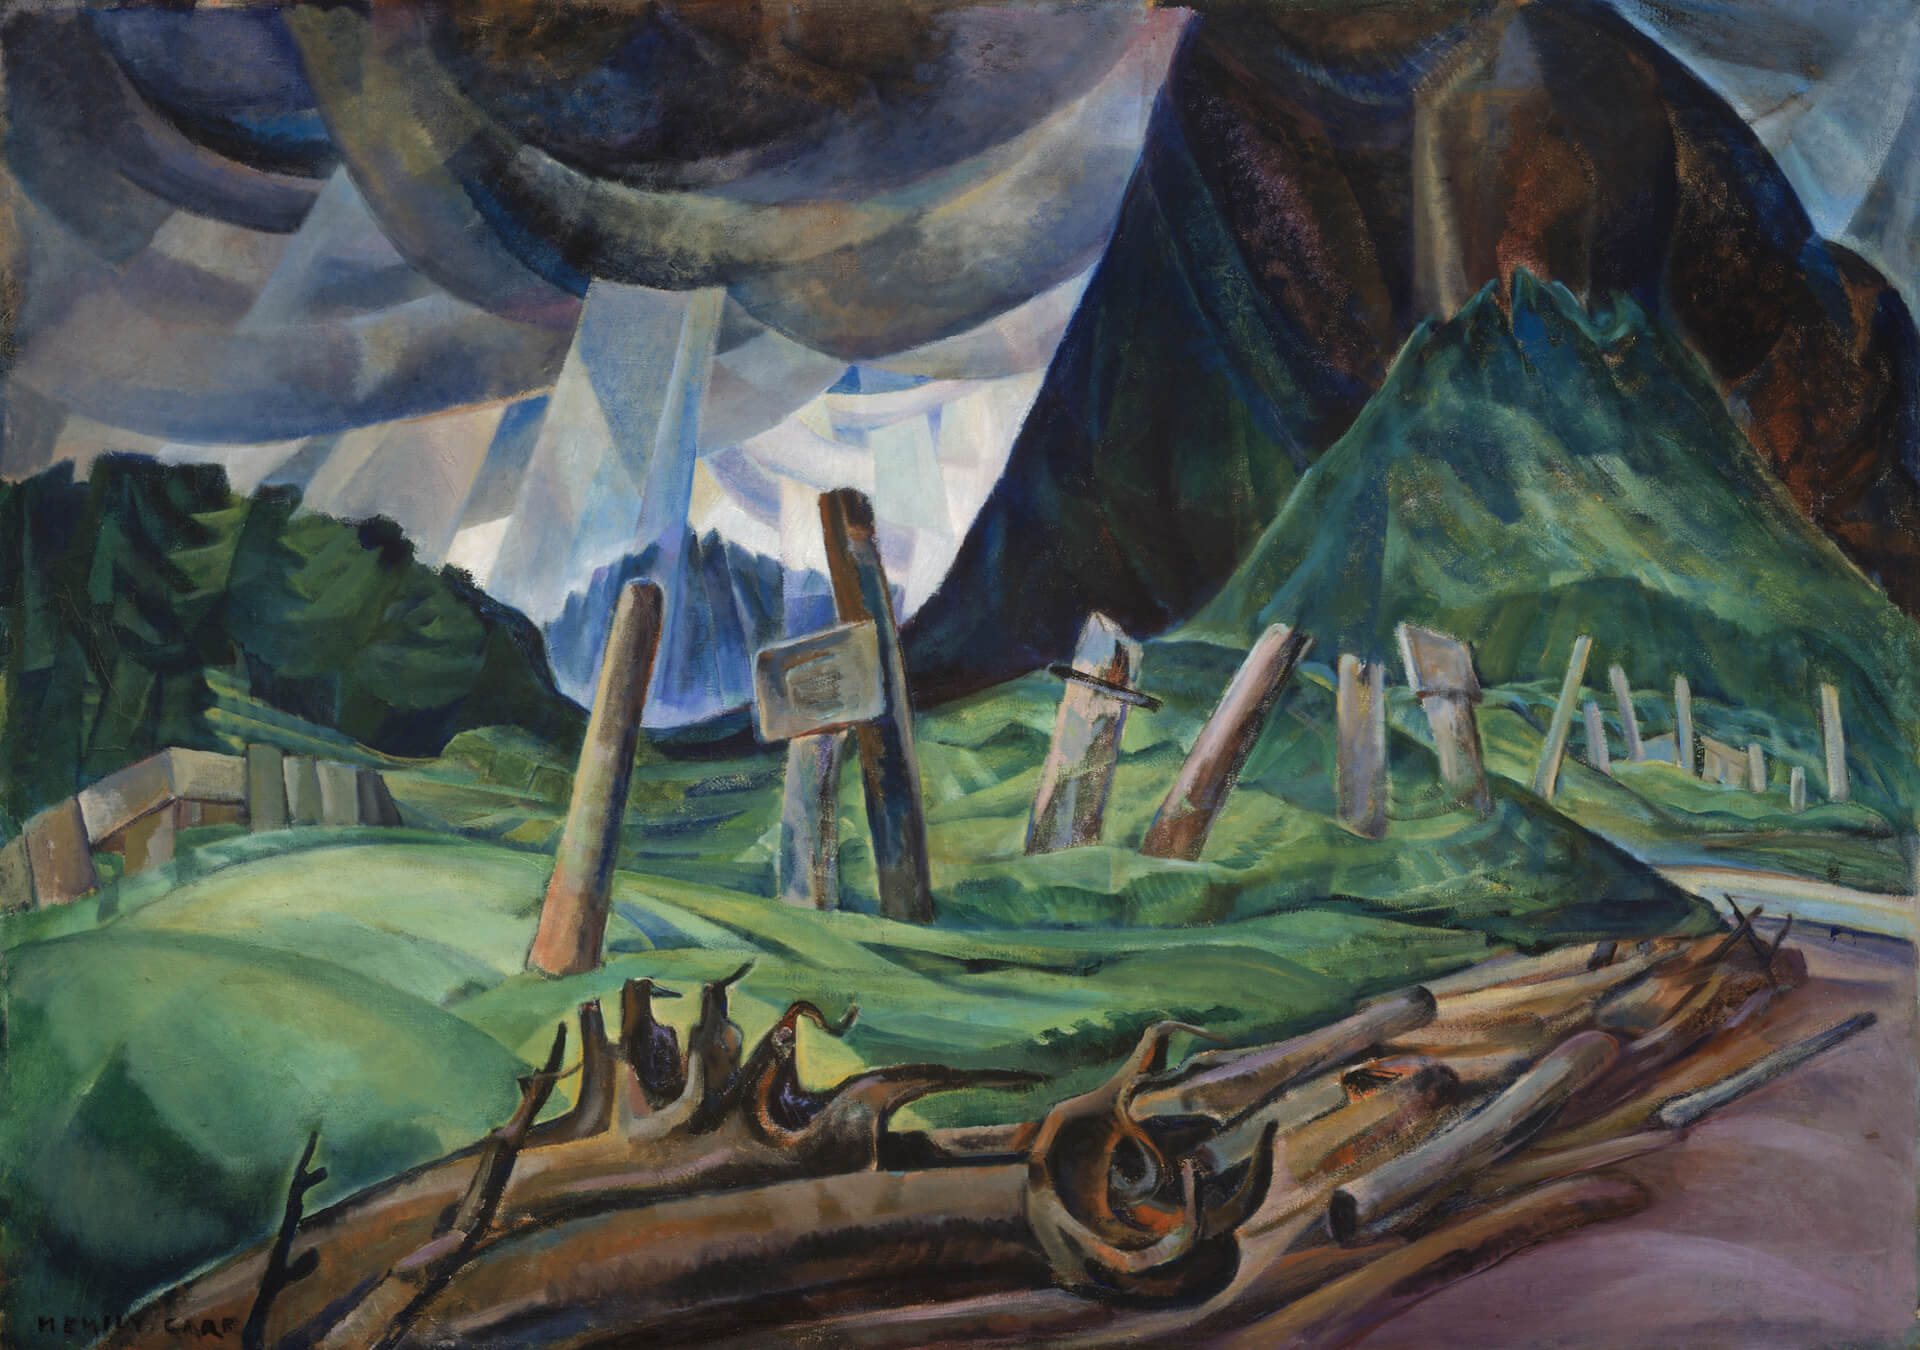 Caorda Enhances Mobile Image-Recognition App for Emily Carr Paintings